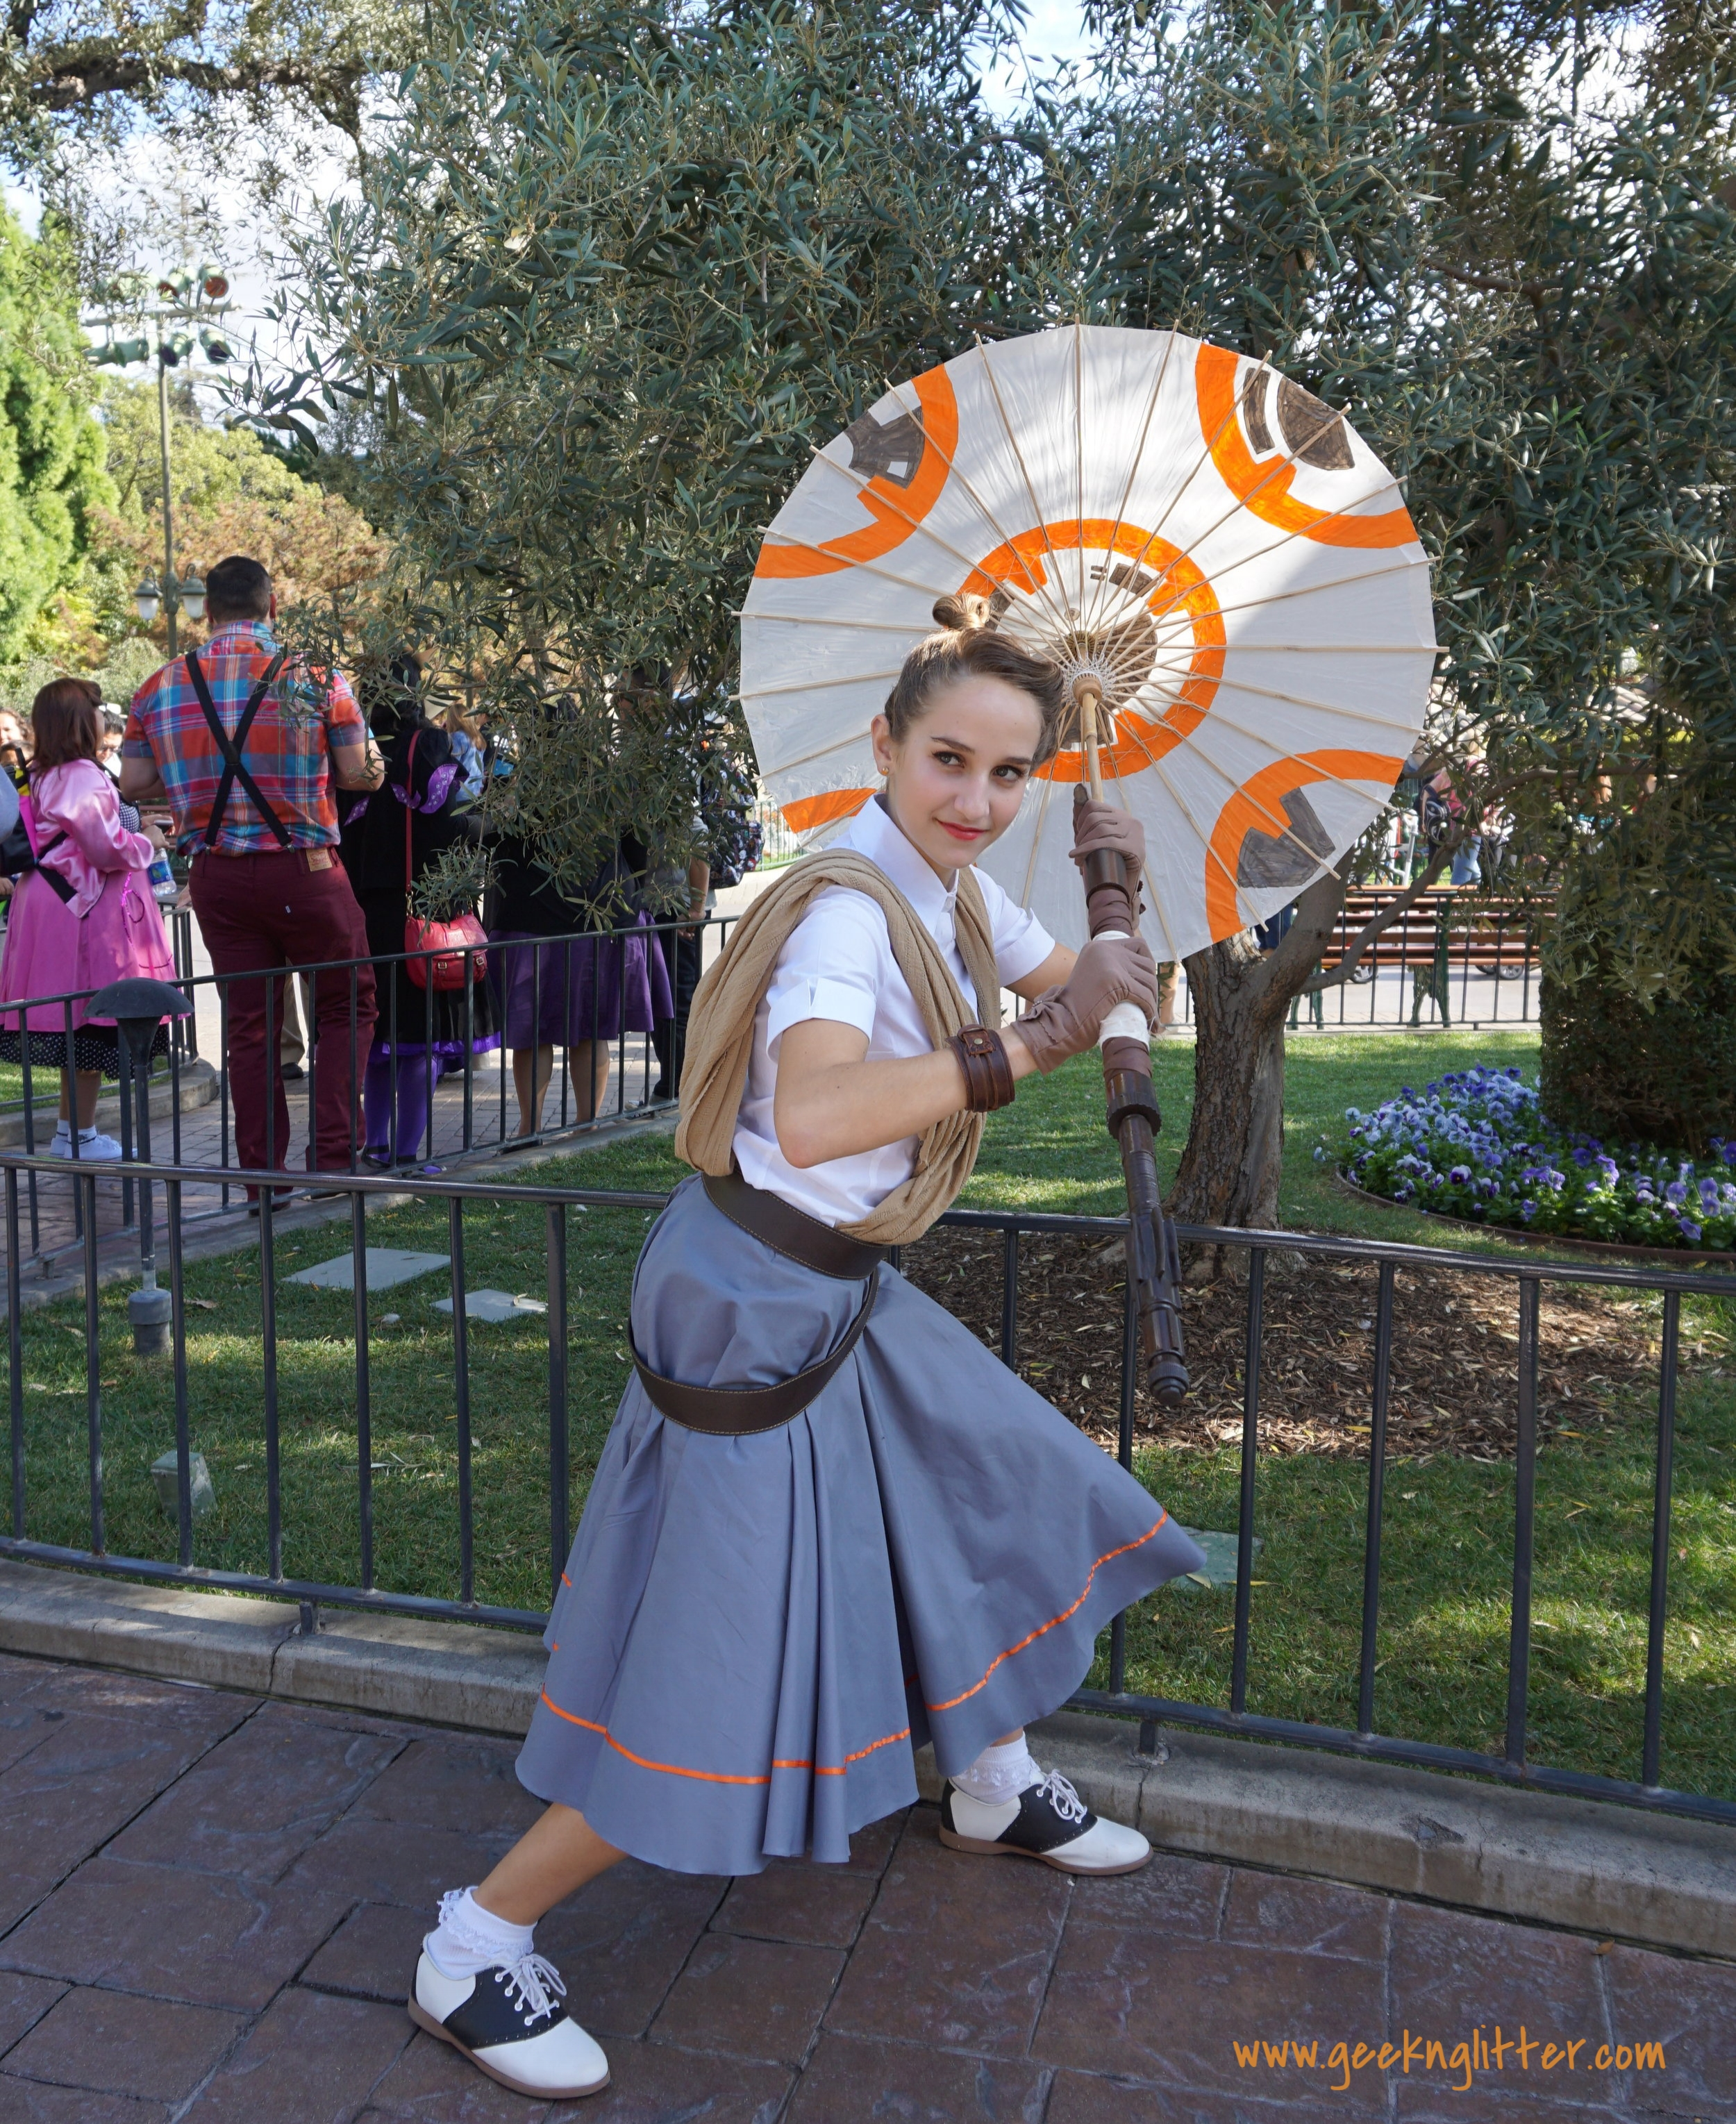 Rey inspired. Loved how Rey's staff and BB-8 was incorporated into the parasol.